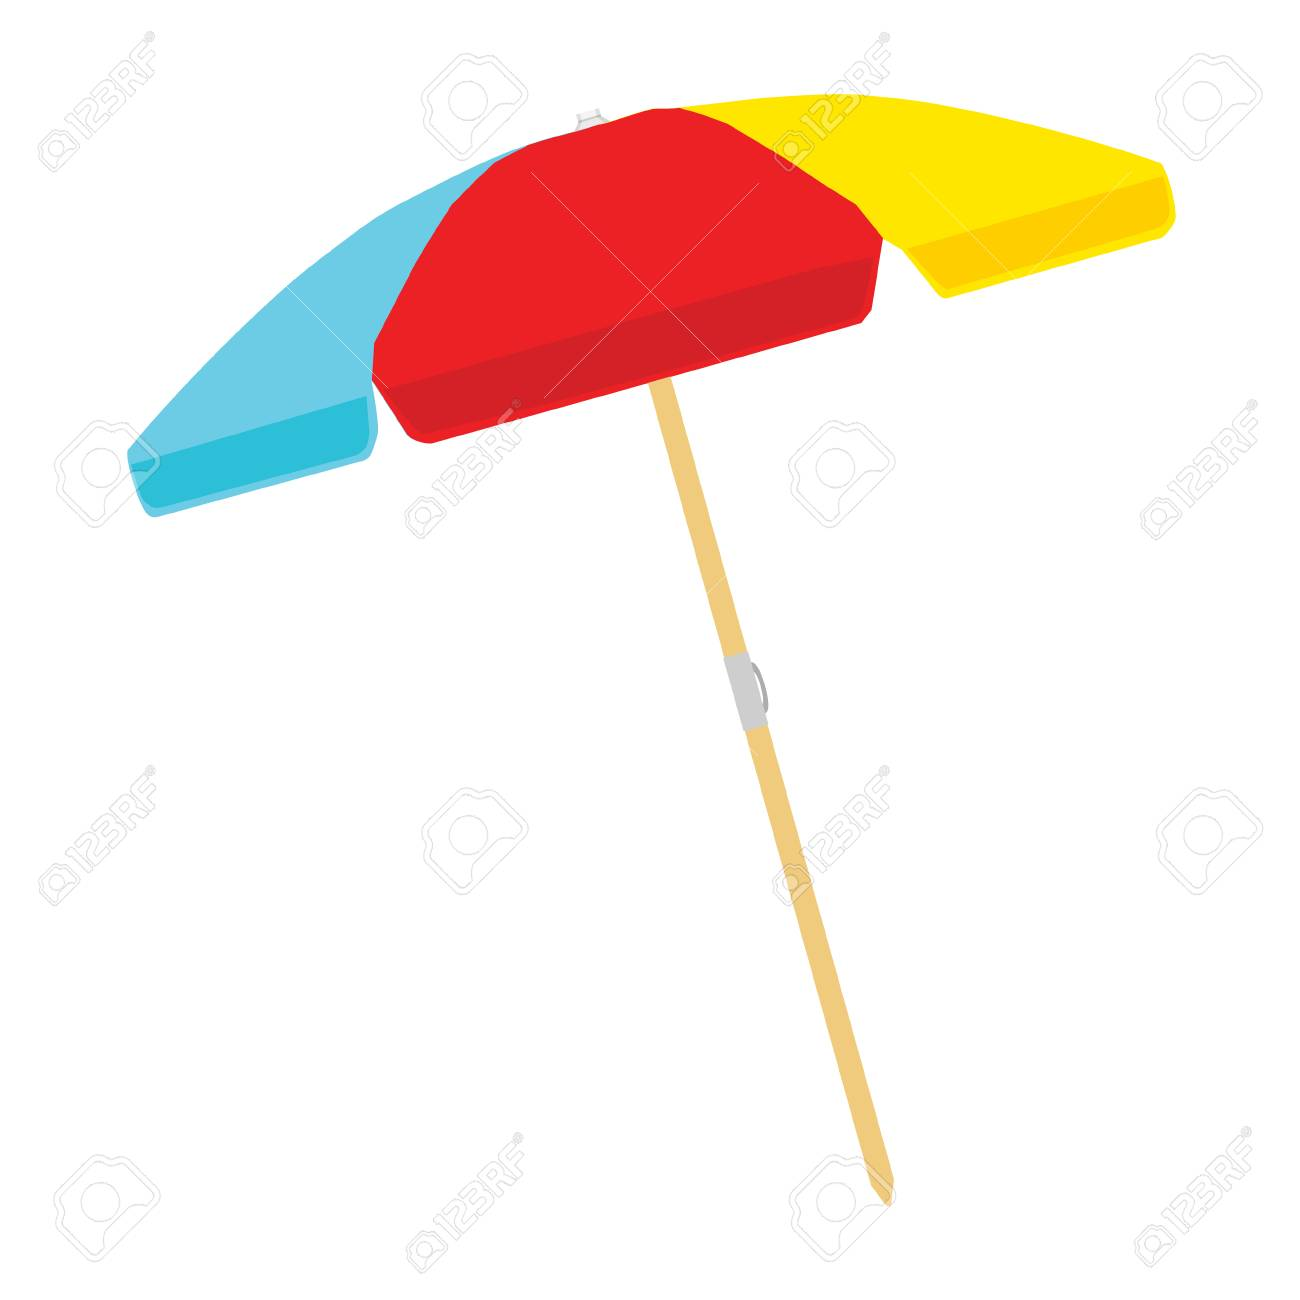 Beach umbrella color isolated on white background. Vector illustration - 113202625